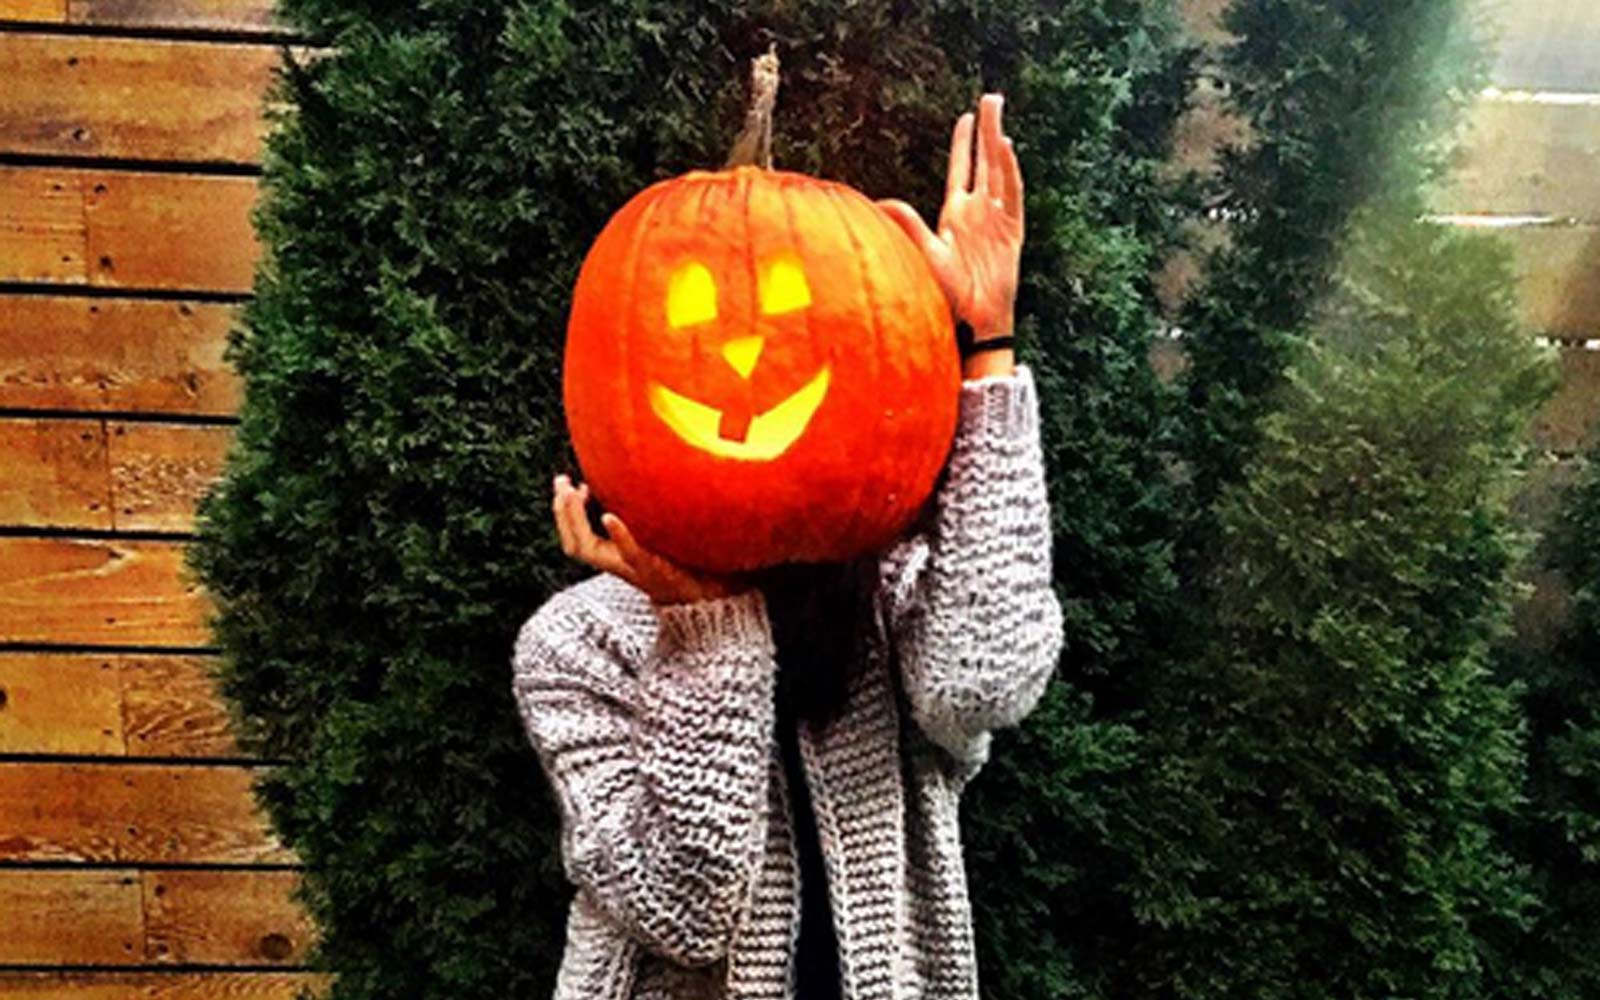 Meghan Markle Posted This Cheeky Pic During Her Secret Halloween Visit From Prince Harry in 2016